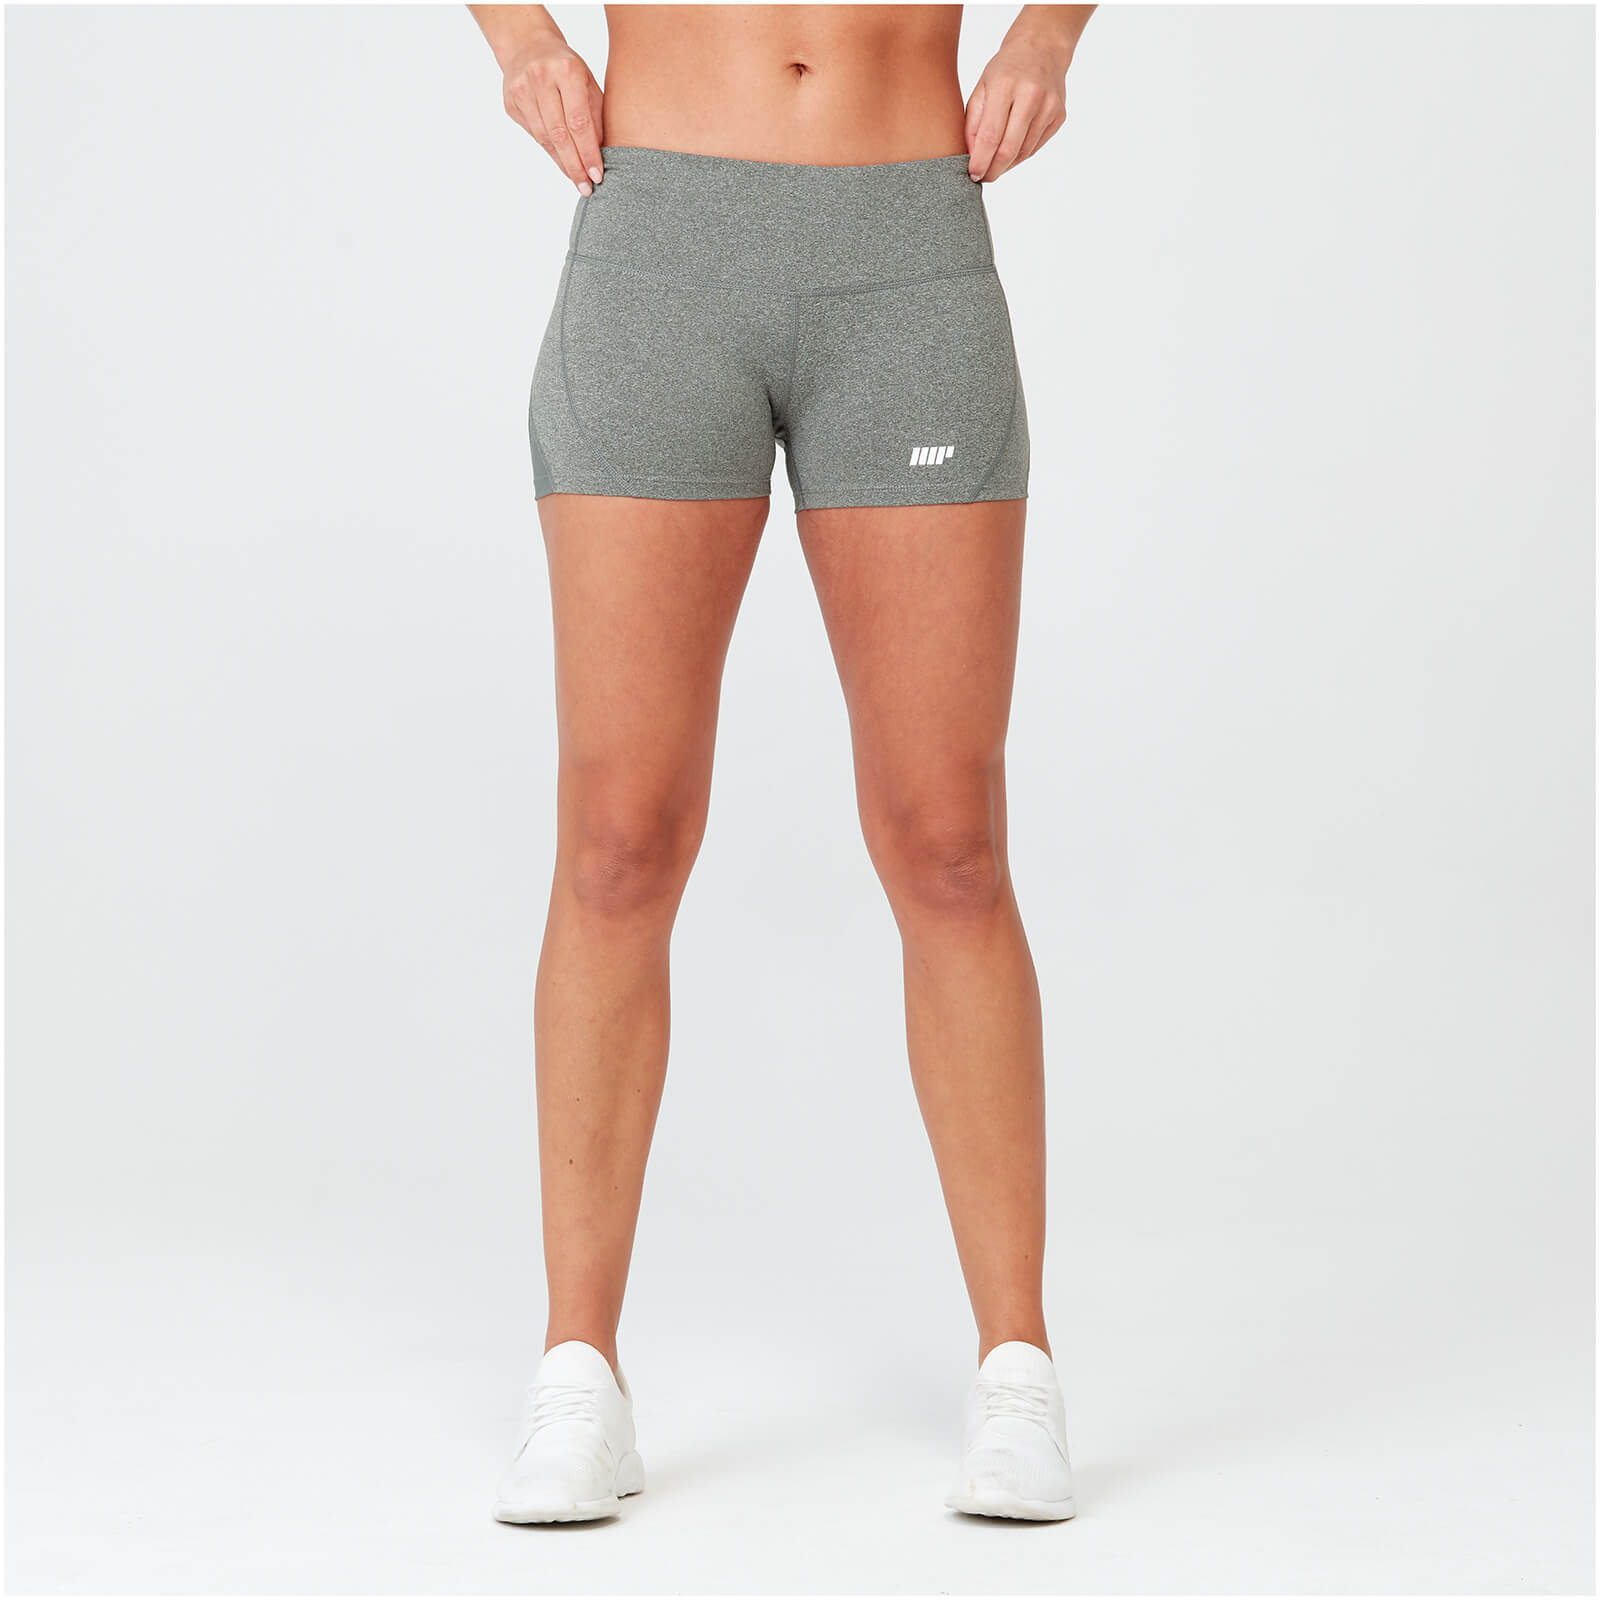 Heartbeat Training Shorts - Grey Marl - XL